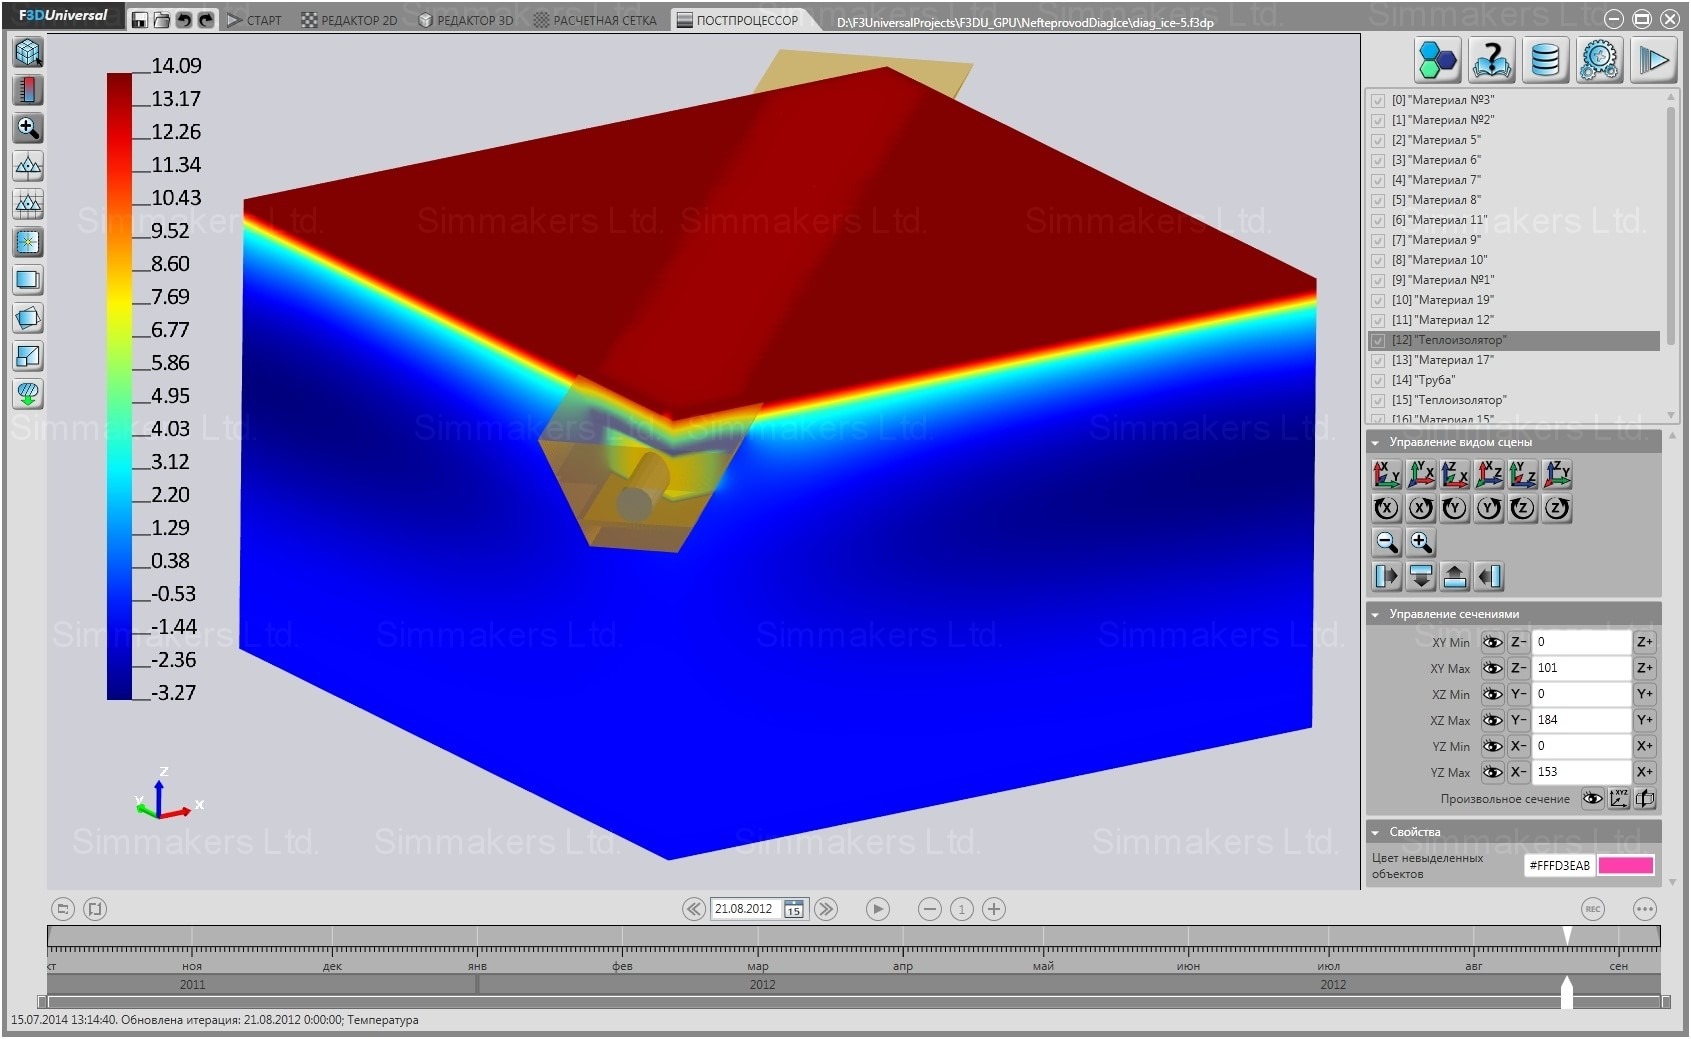 3D temperature field calculated in the Frost 3D Universal software